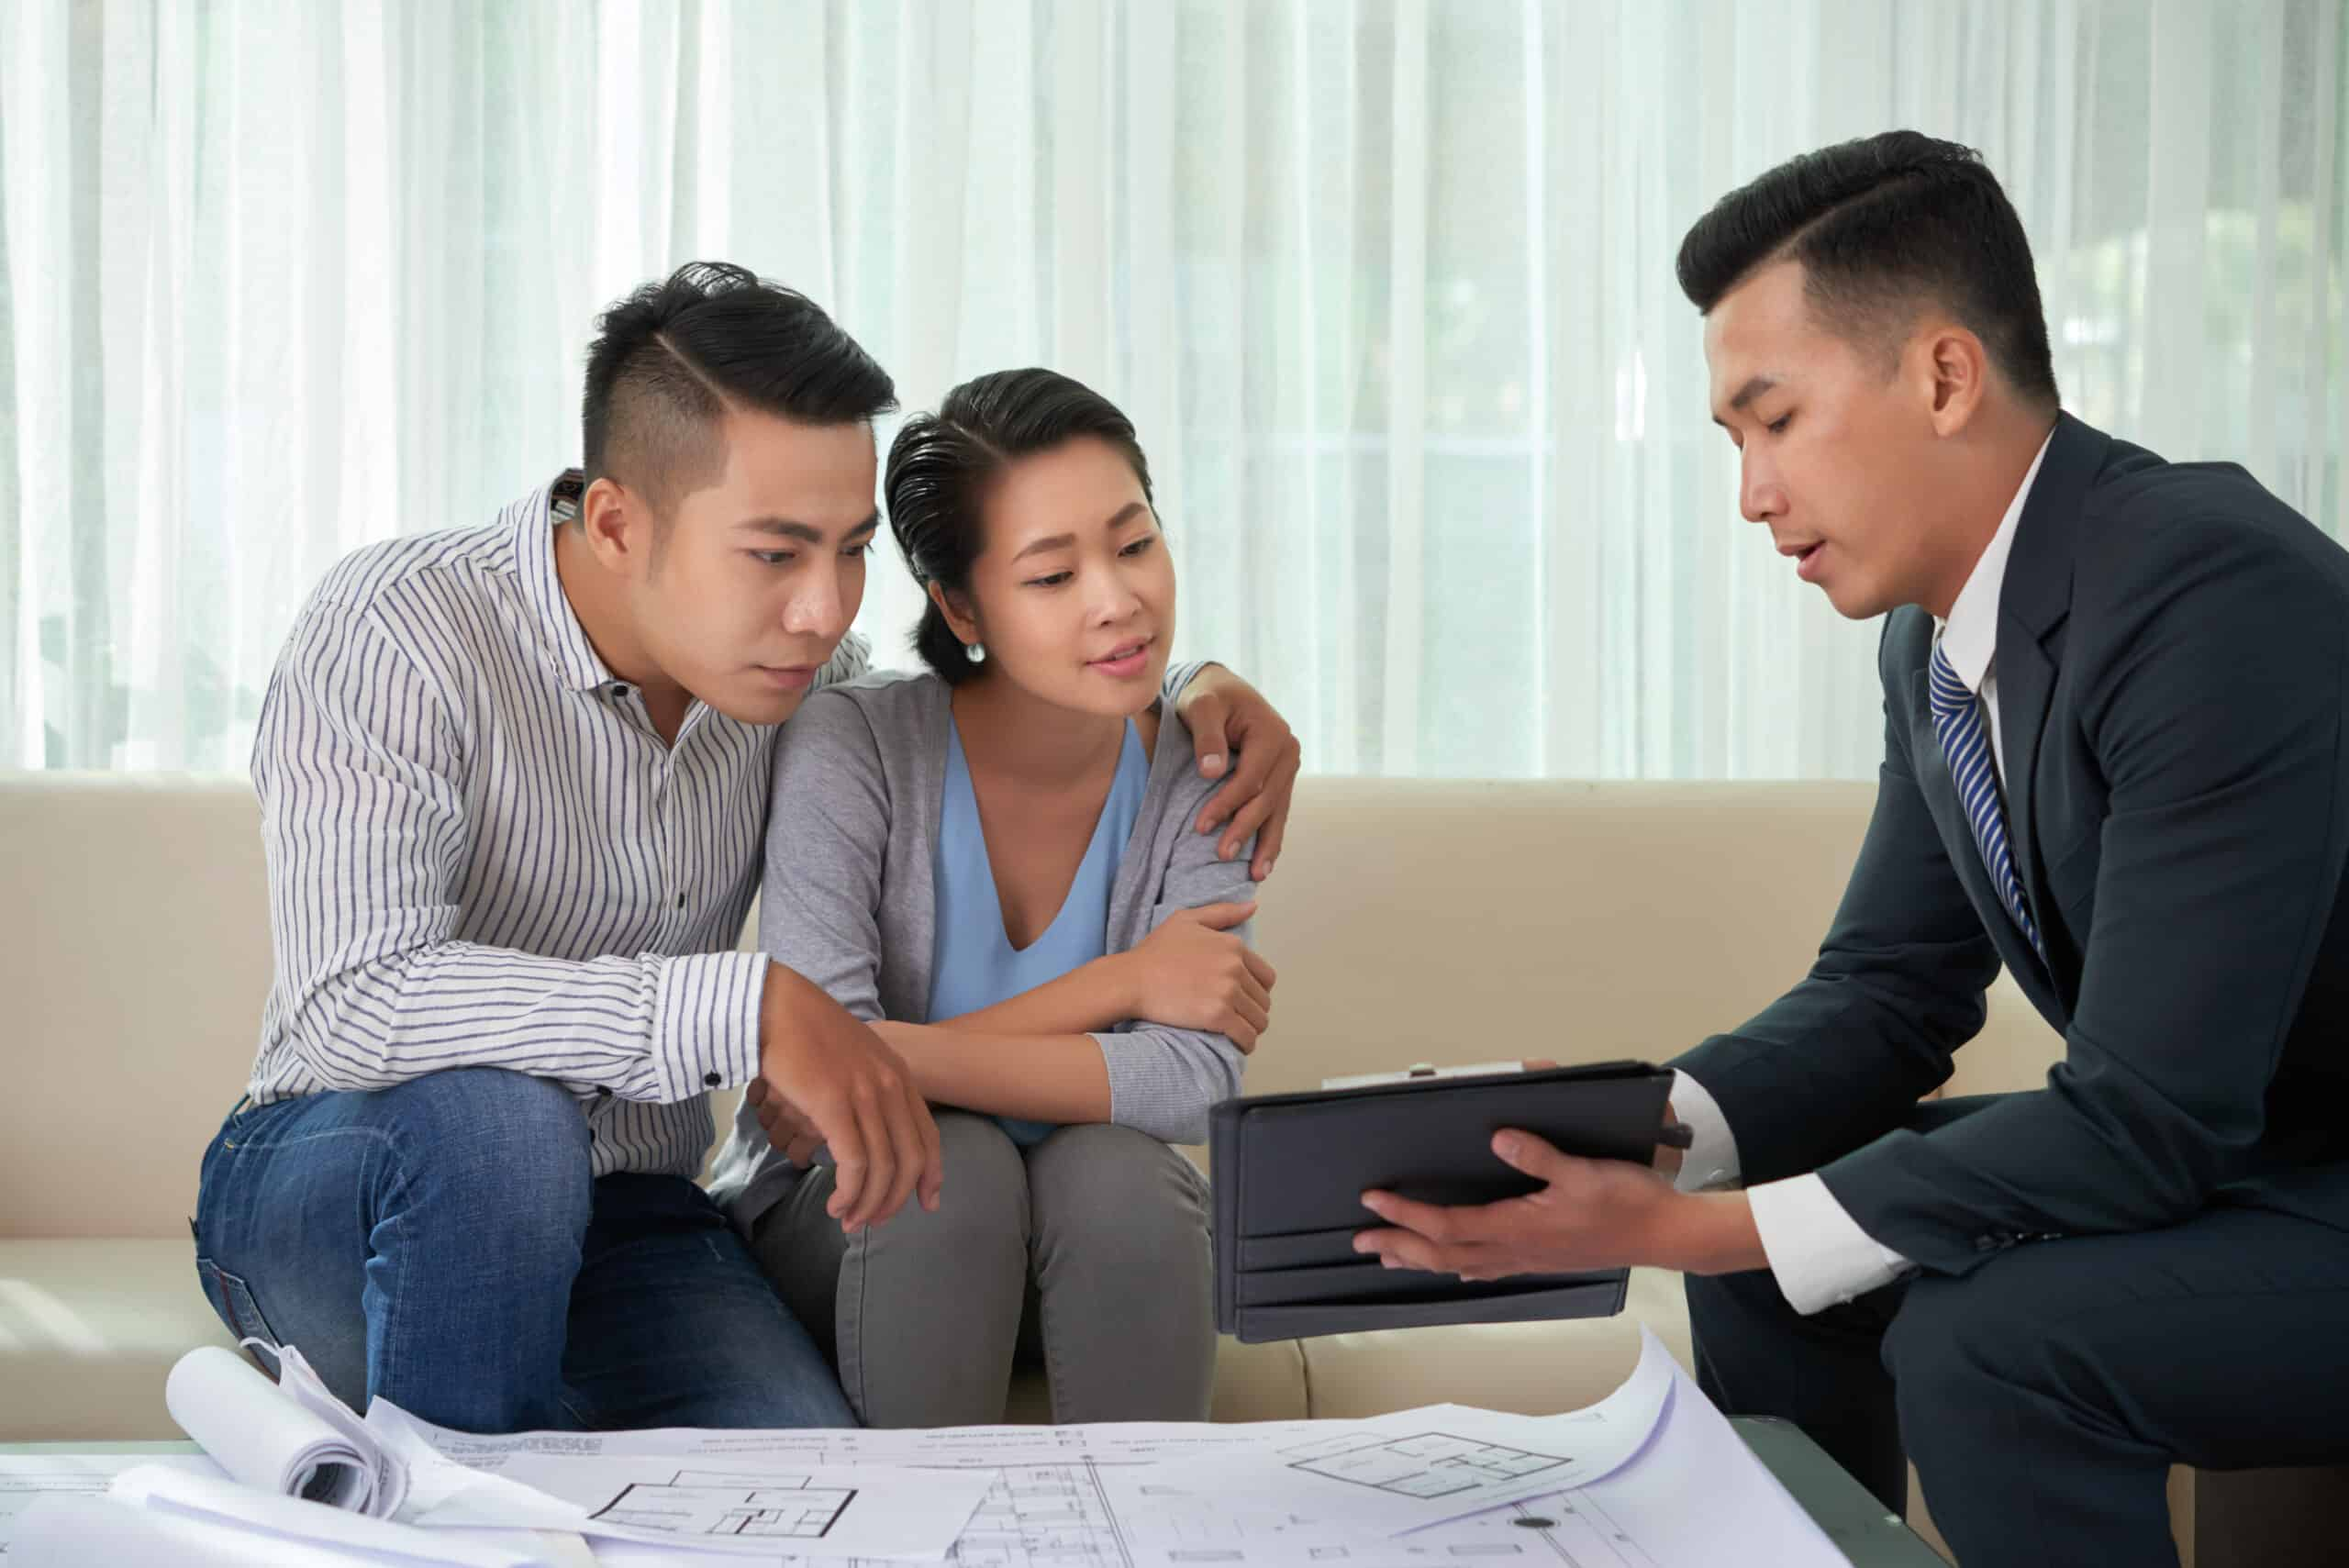 Real estate broker showing photos of house on digital tablet to young couple